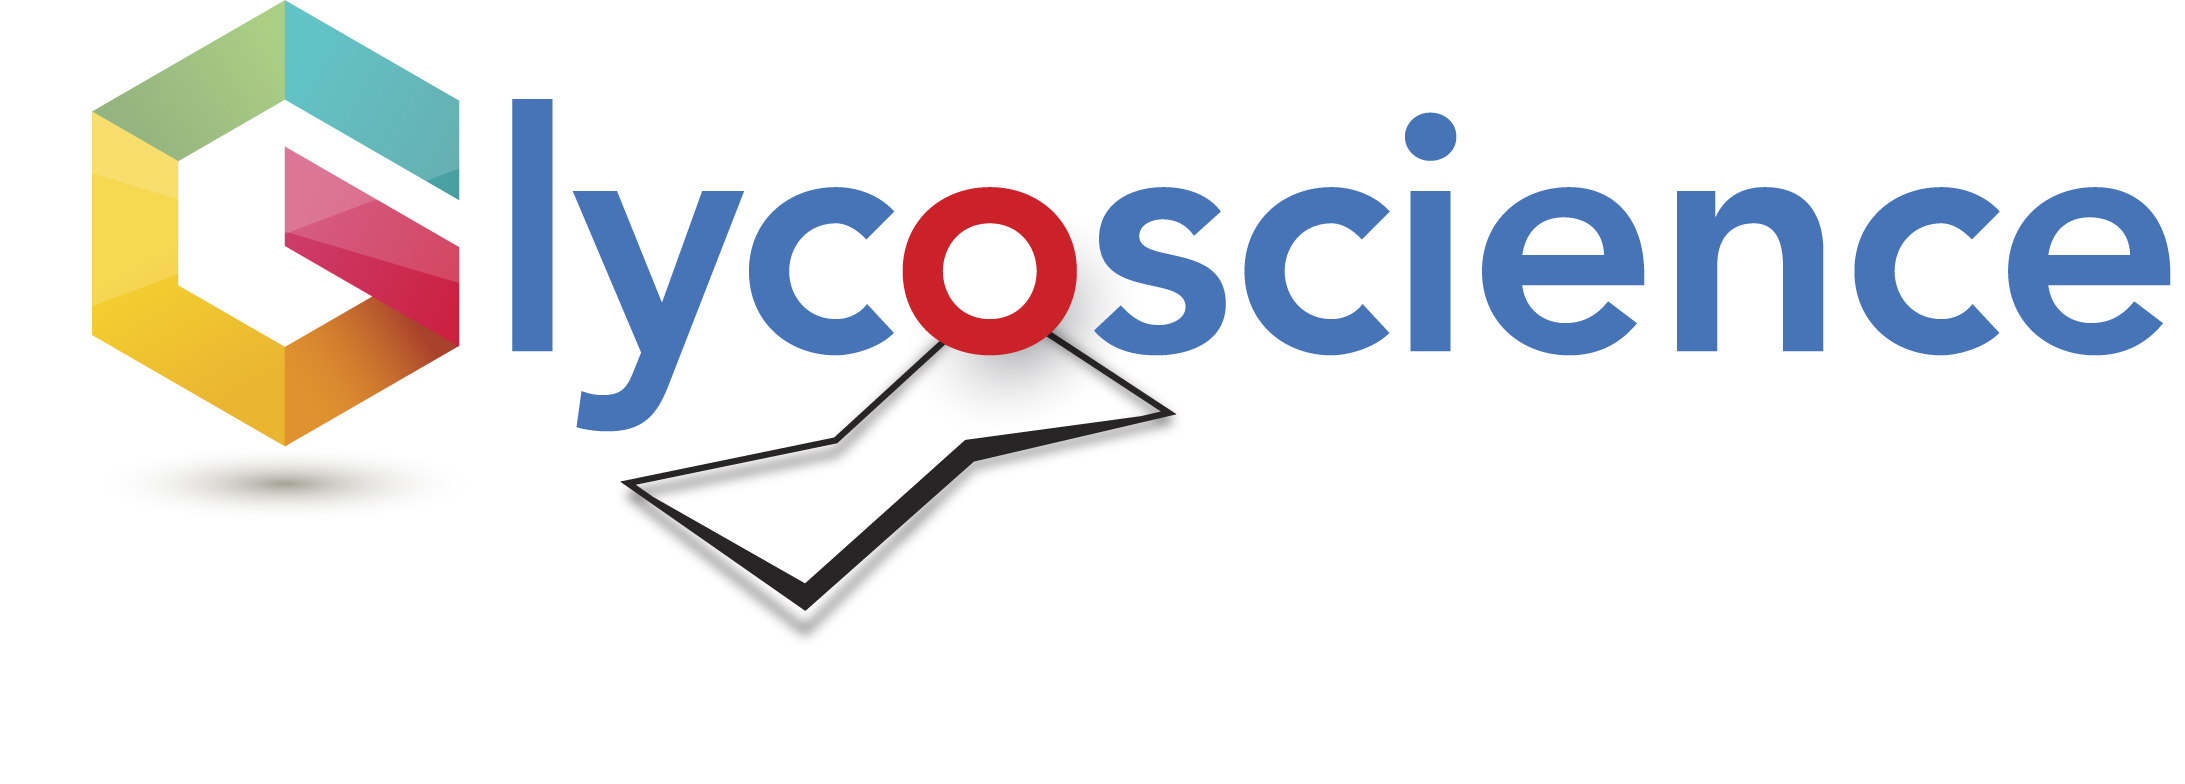 Glycoscience graphic identity